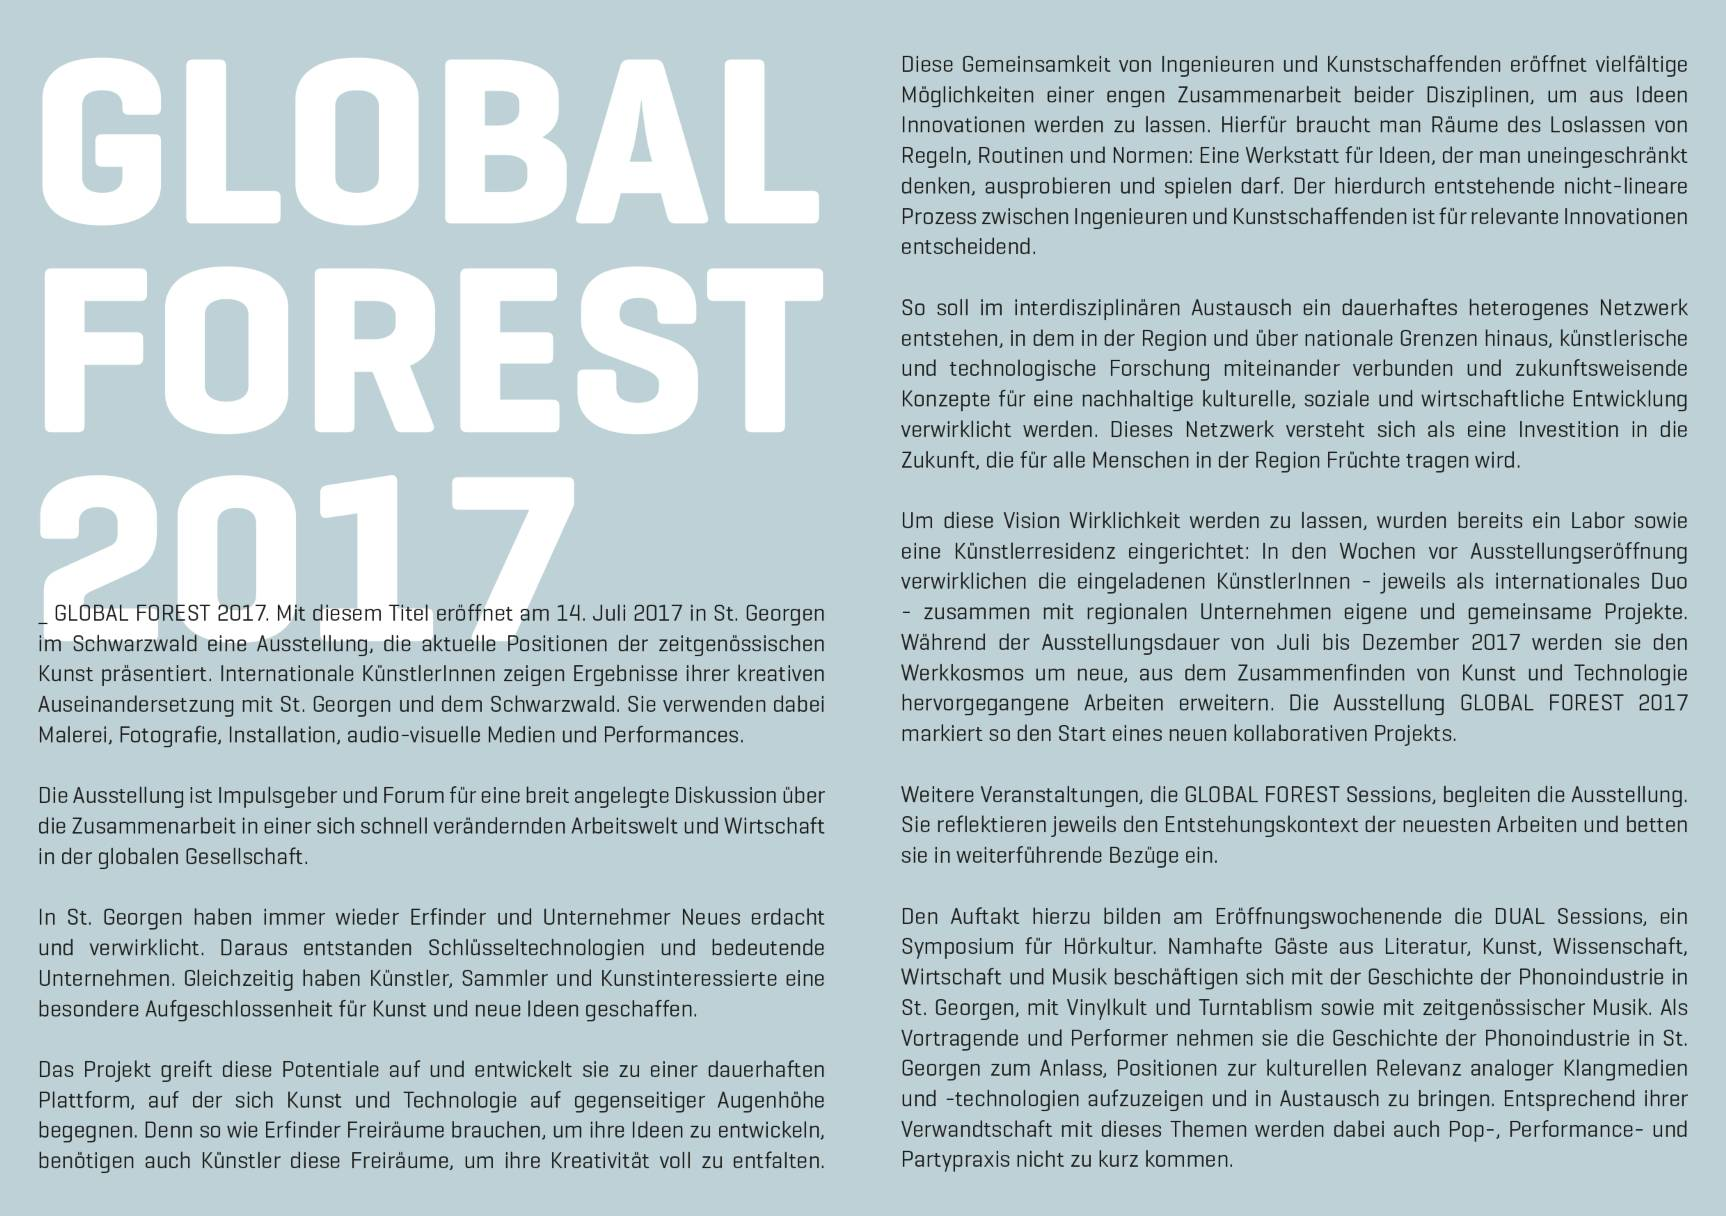 Global Forest 2